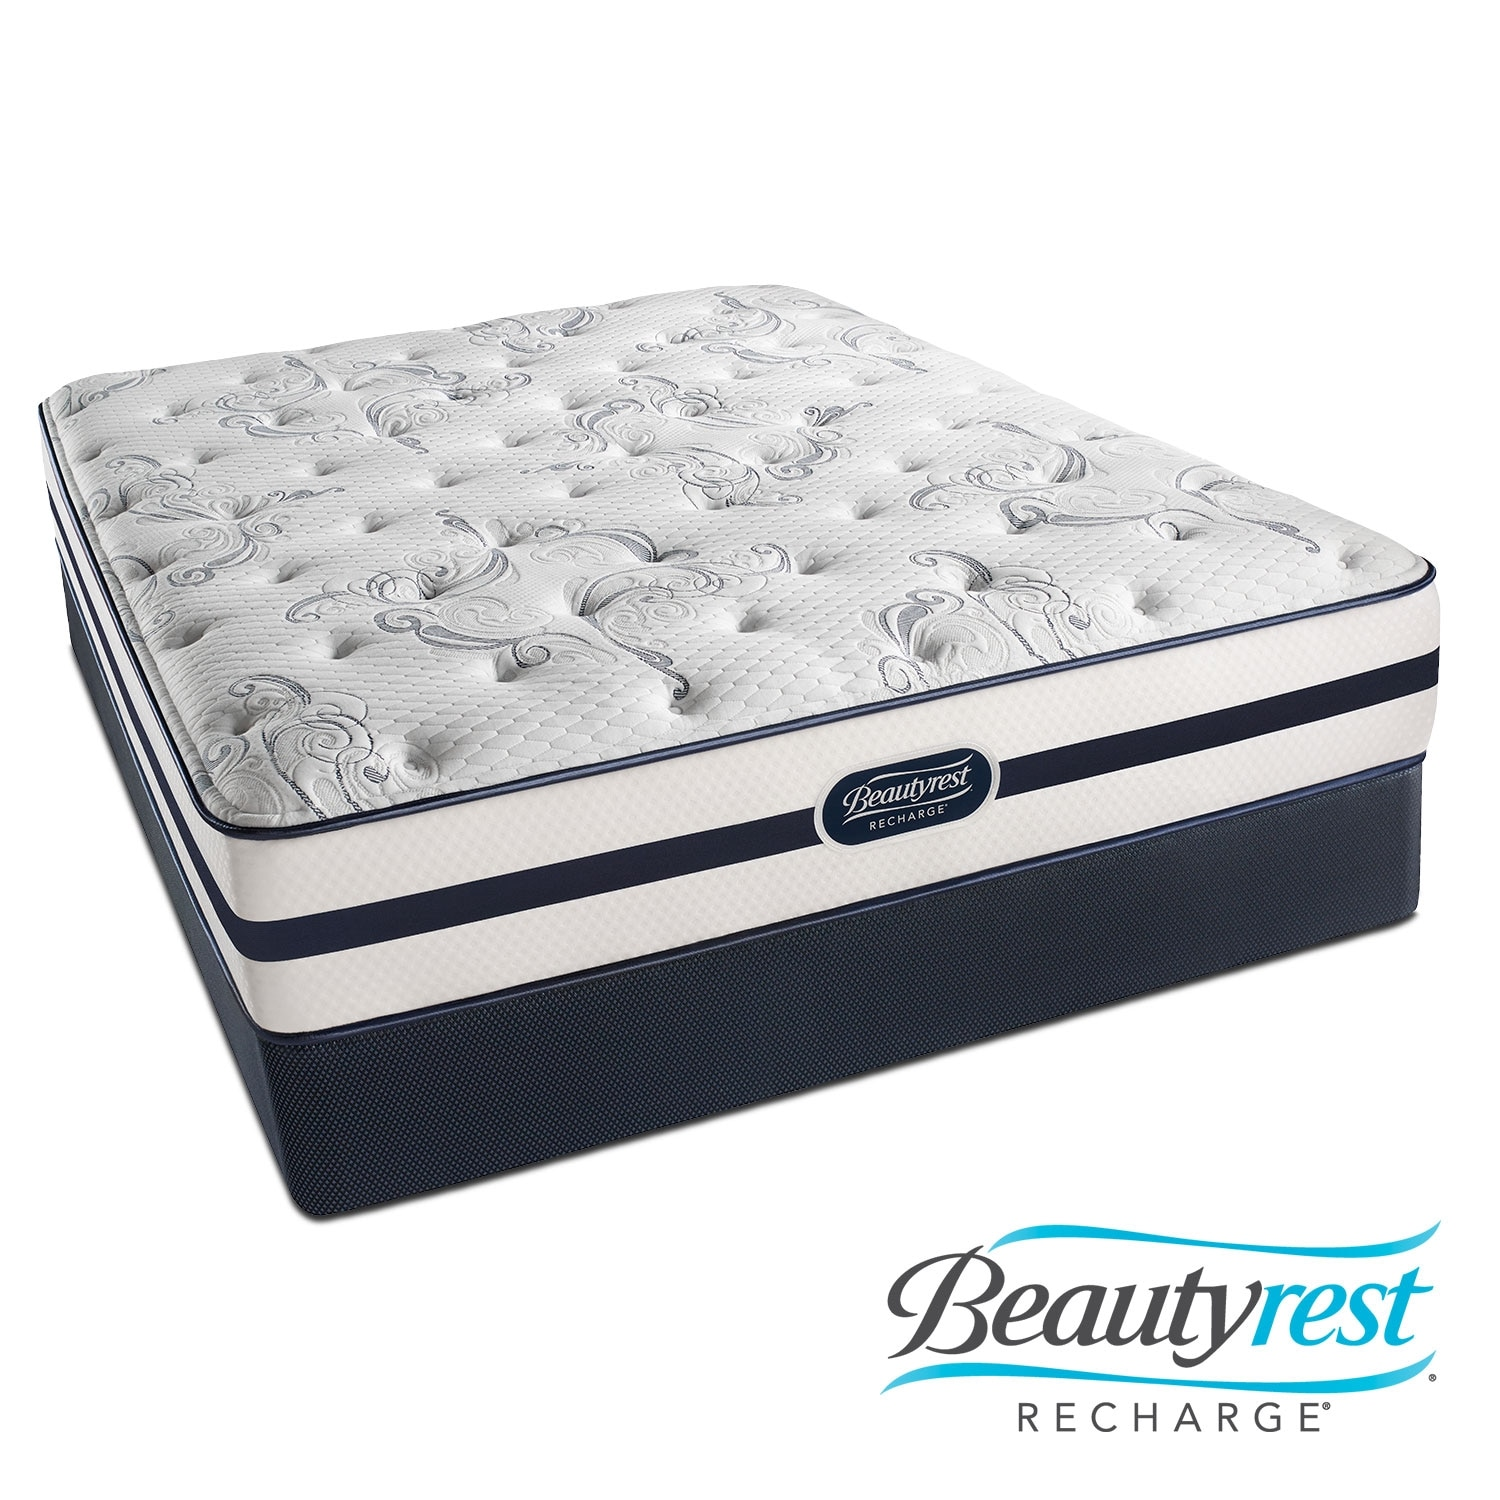 Mattresses and Bedding - Justine Plush California King Mattress/Split Foundation Set